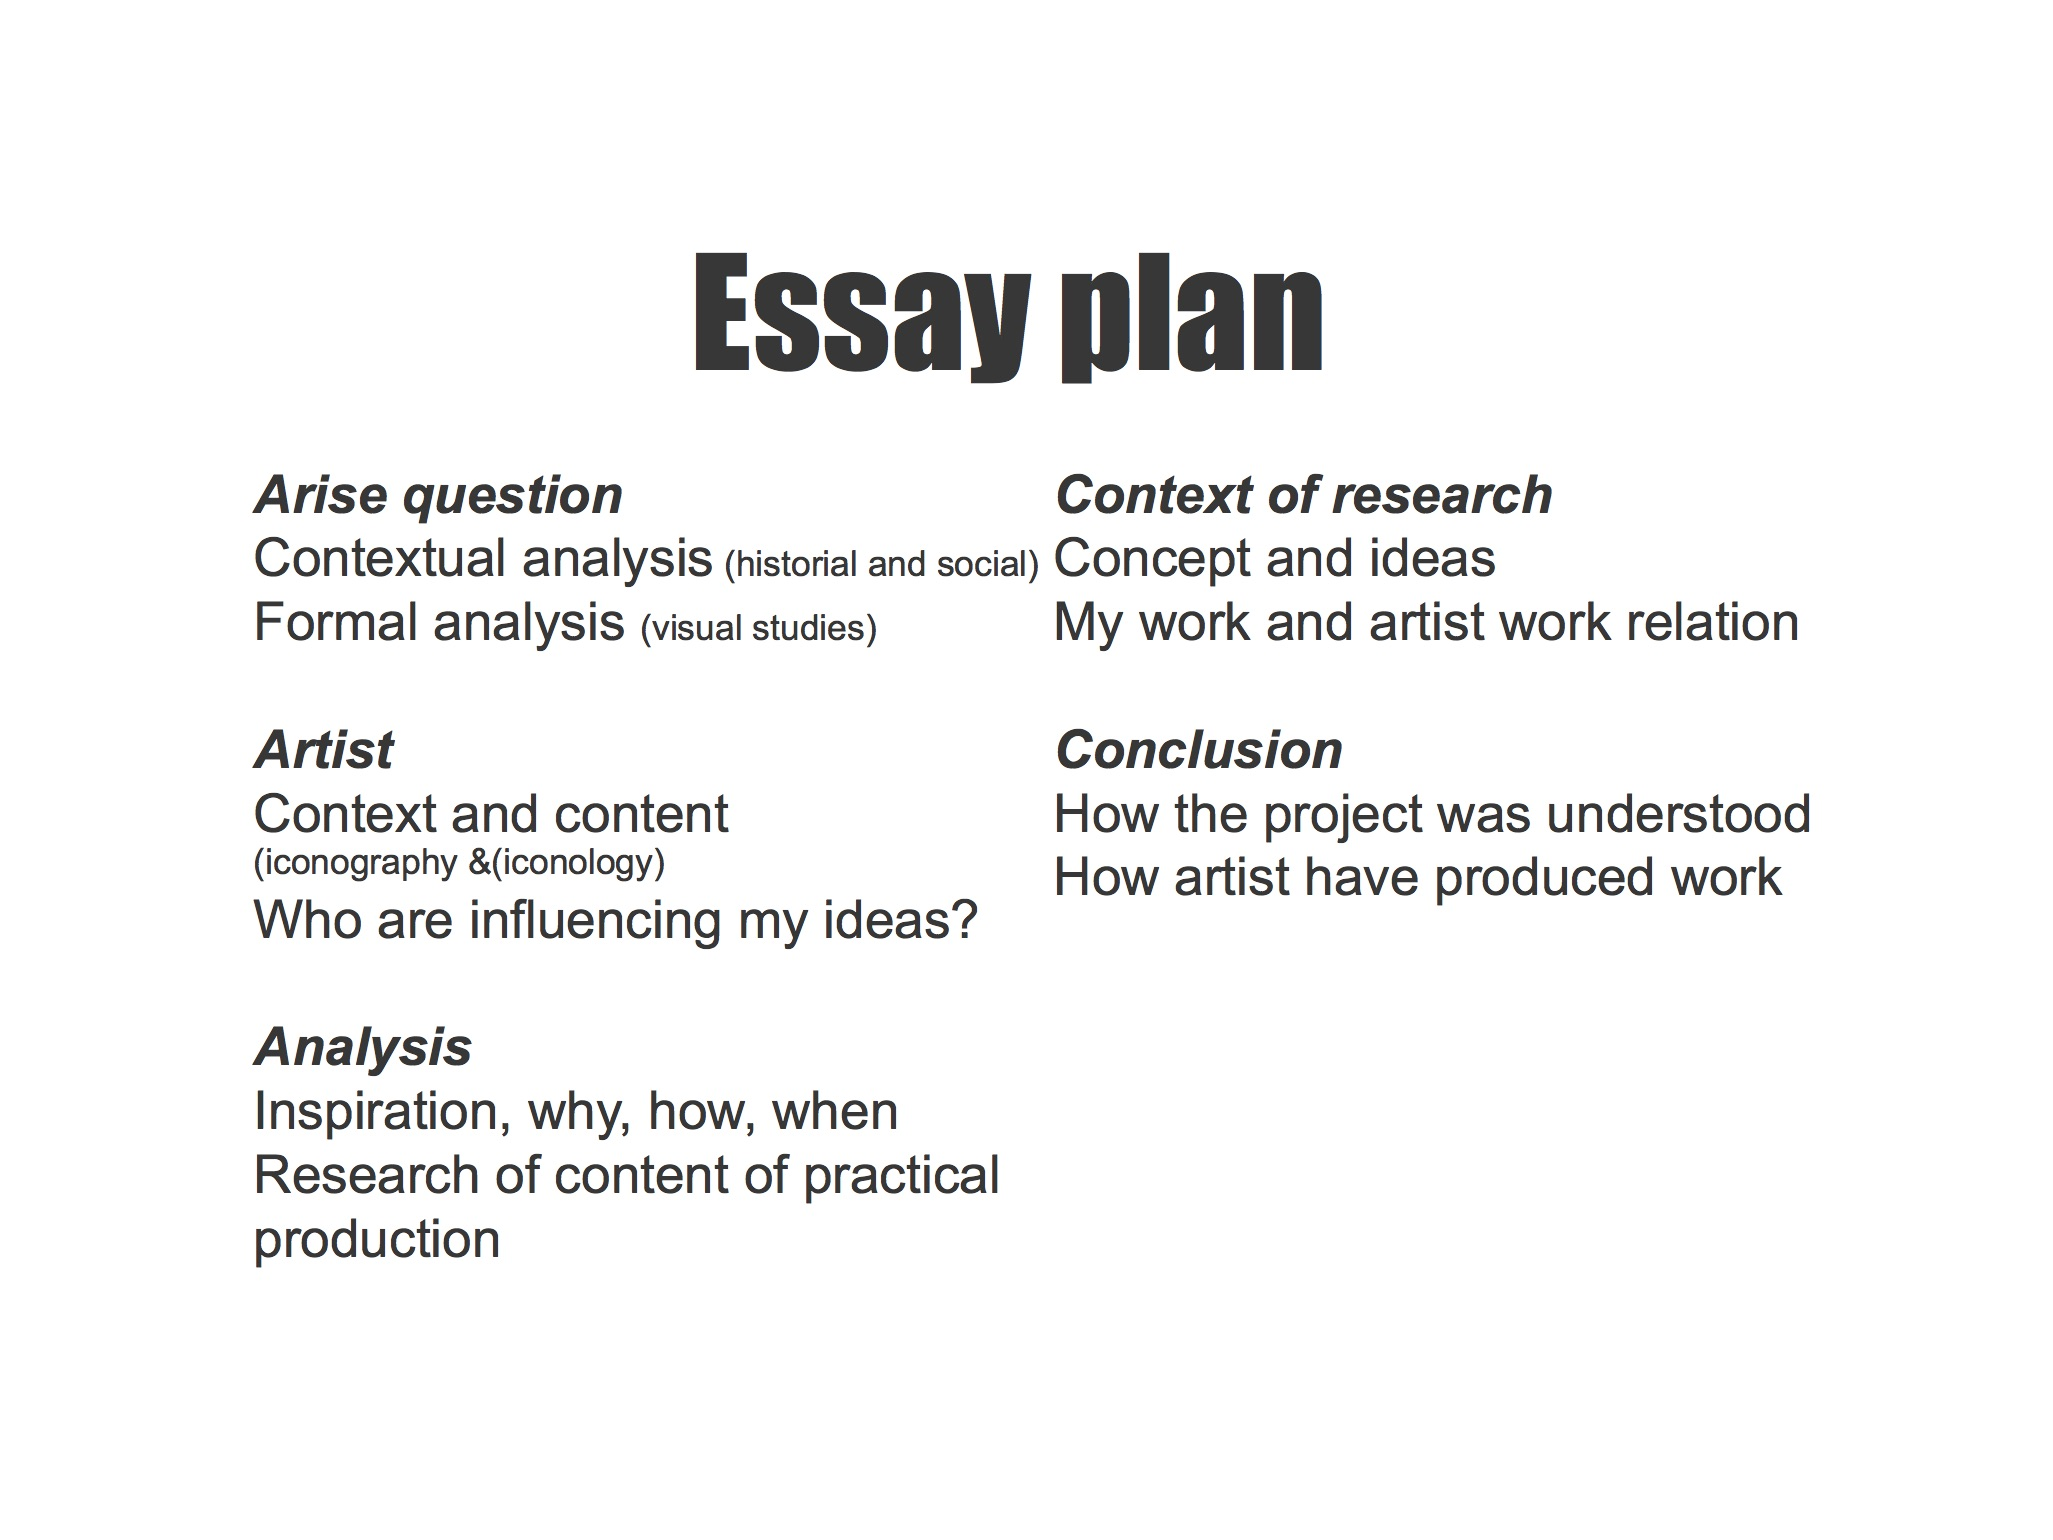 an example of essay